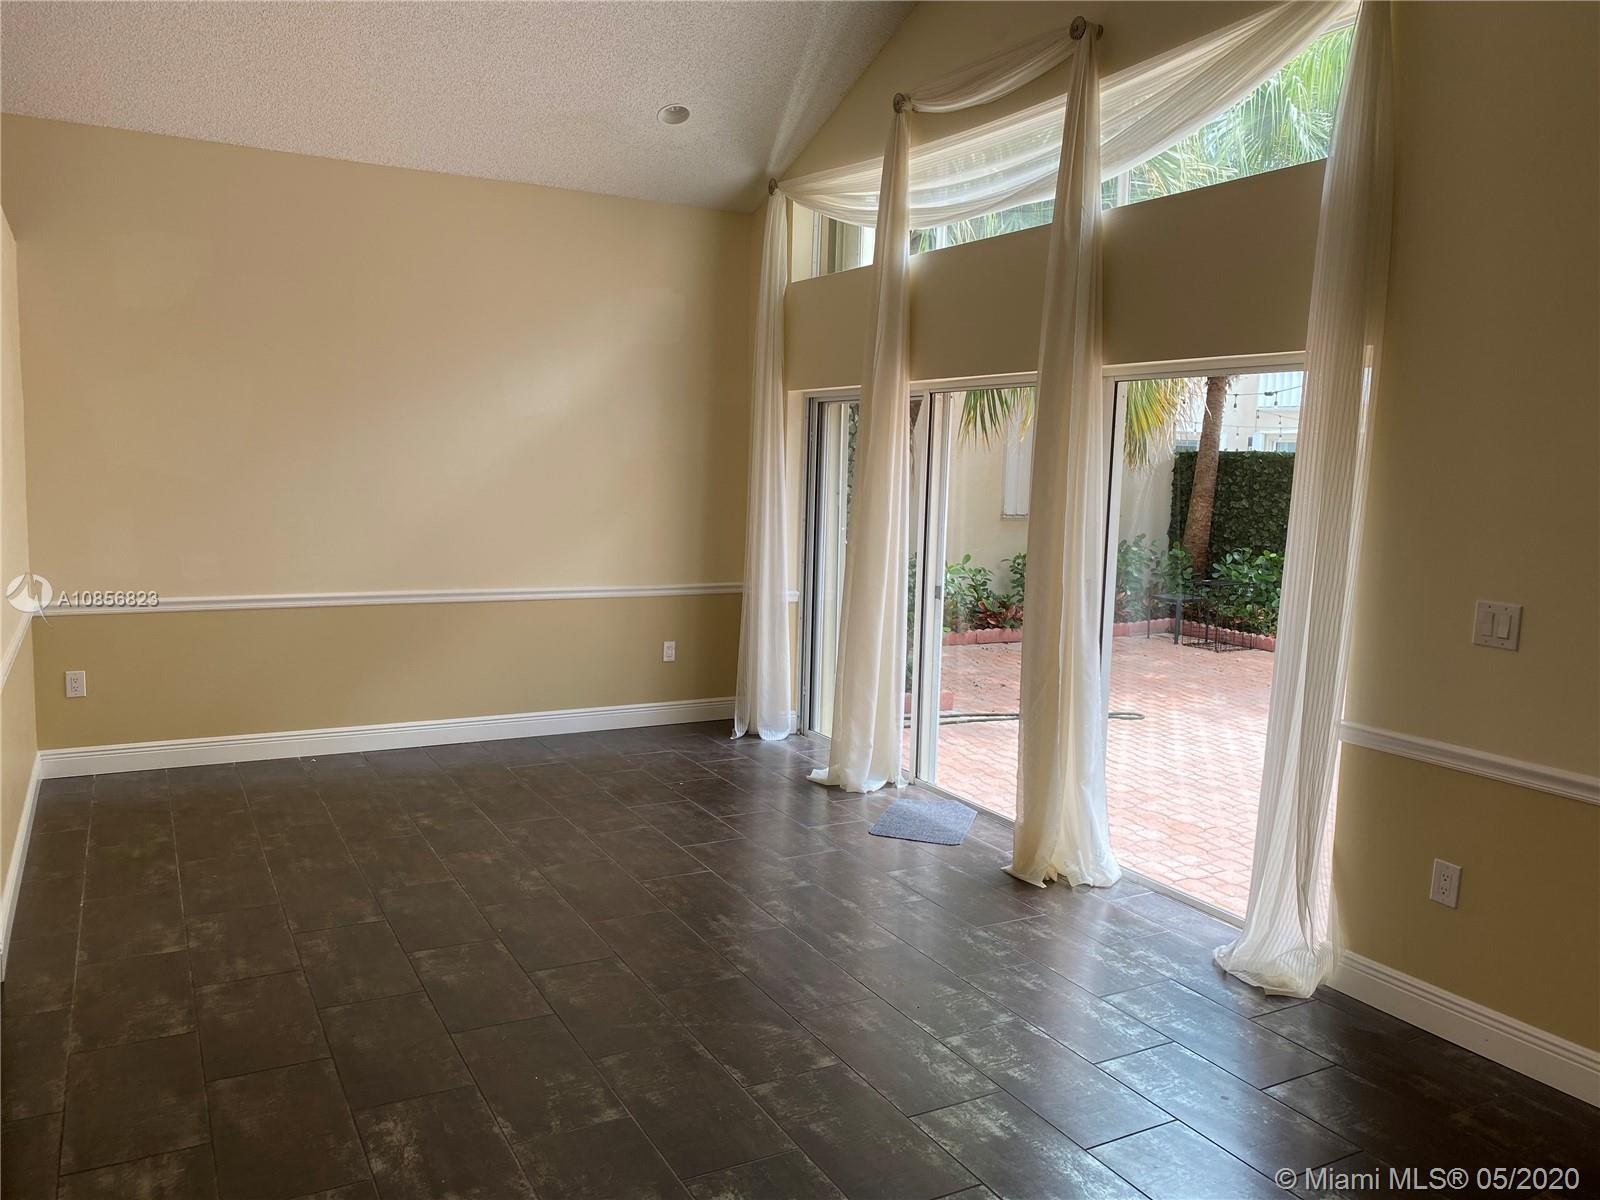 """THIS SPACIOUS REMODELED HOME IS LOCATED IN THE BEST GATED COMMUNITY IN EAST HOLLYWOOD """"WEST LAKE VIL"""